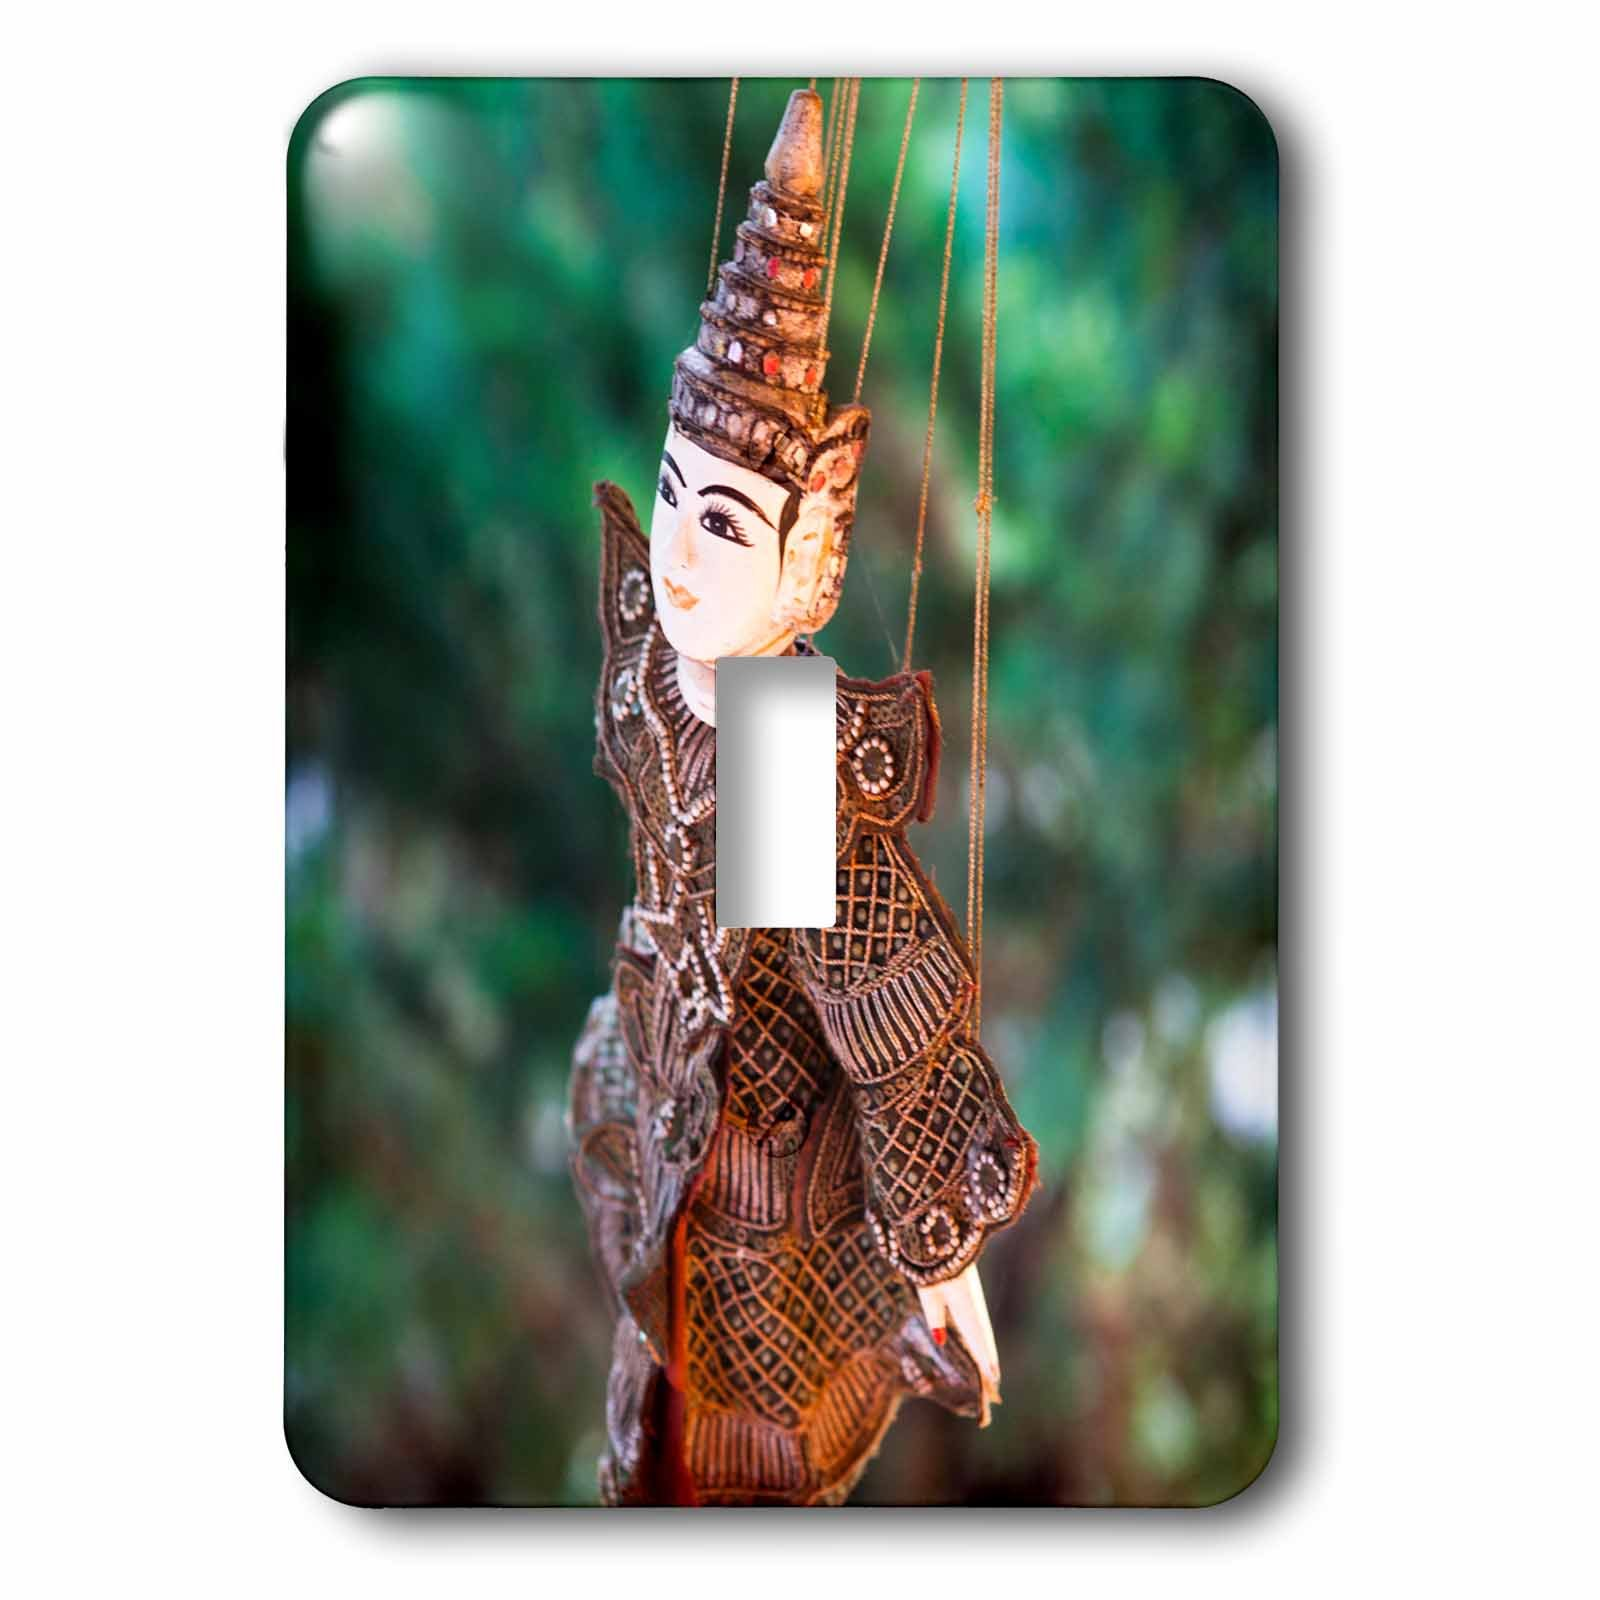 Danita Delimont - Toys - A local Thai puppet - Light Switch Covers - single toggle switch (lsp_226036_1) by 3dRose